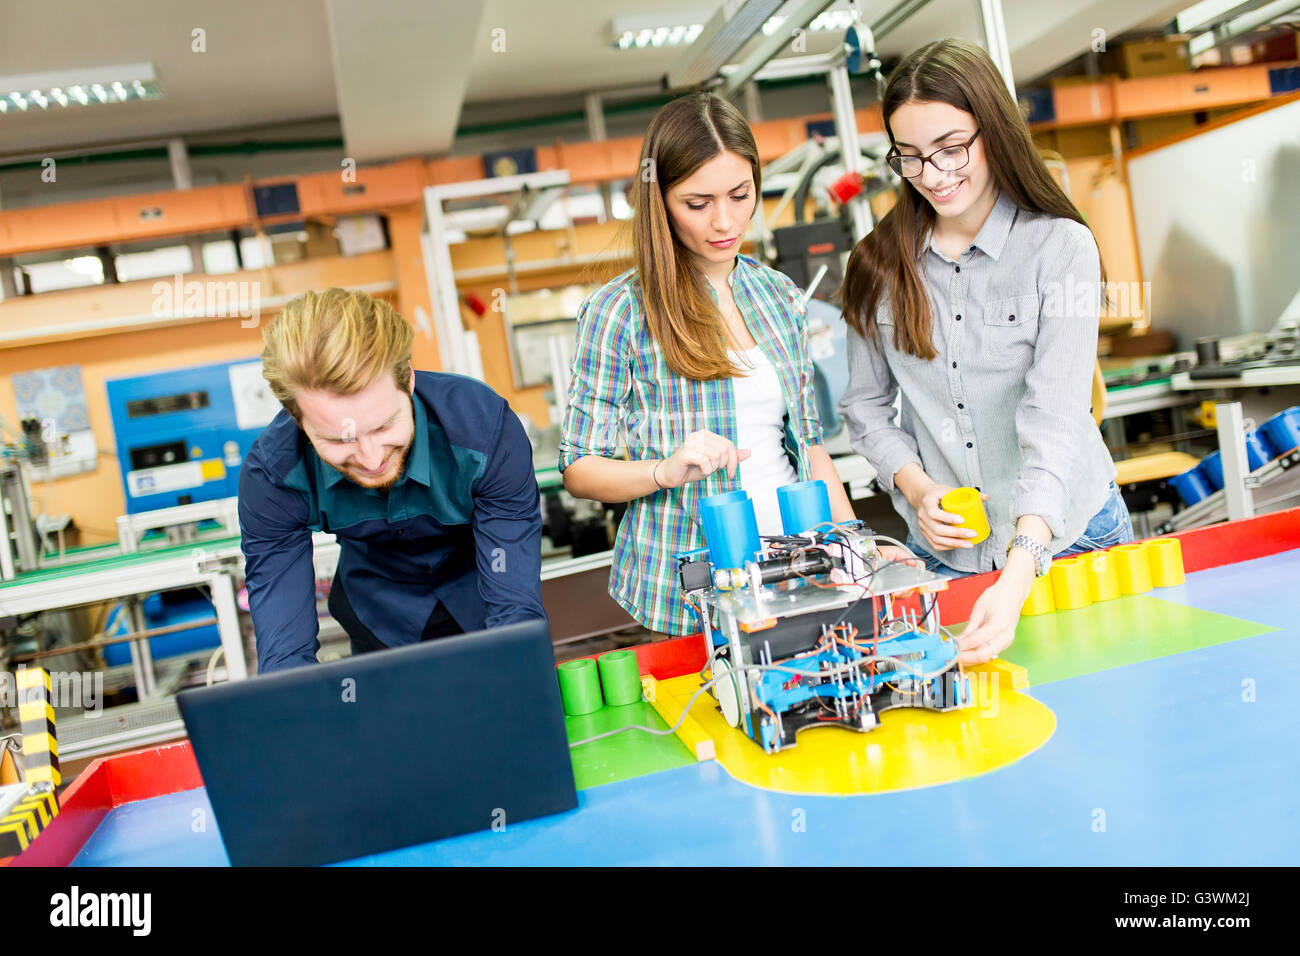 Young People In The Robotics Classroom Stock Photo 105670730 Alamy